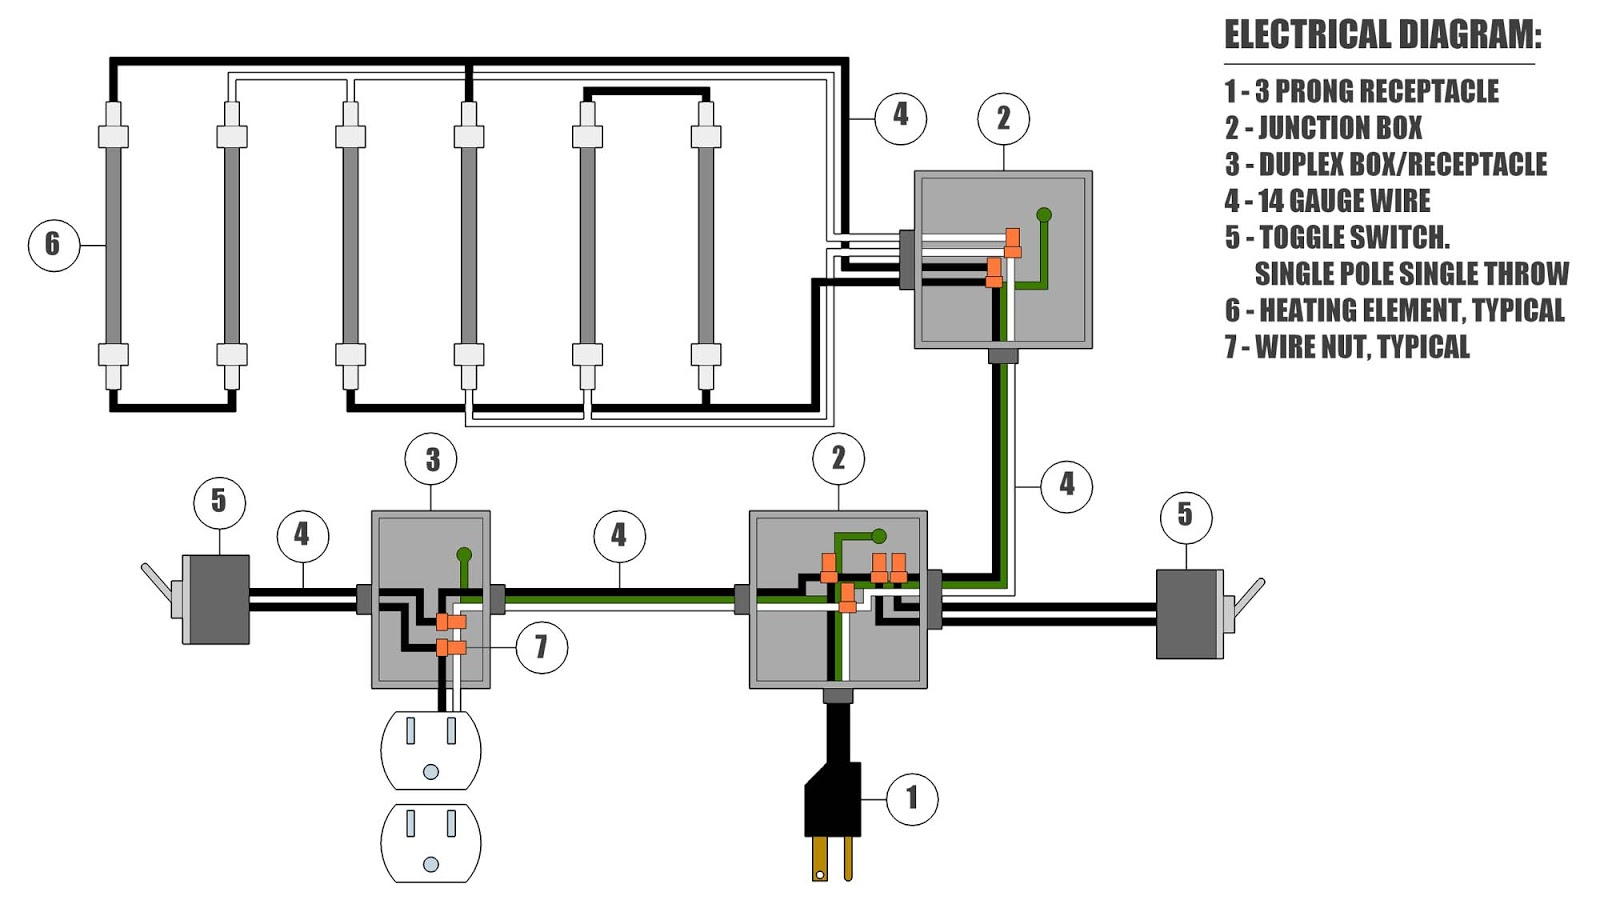 3 prong plug wiring colors 3 image wiring diagram 3 prong outlet wiring diagram jodebal com on 3 prong plug wiring colors